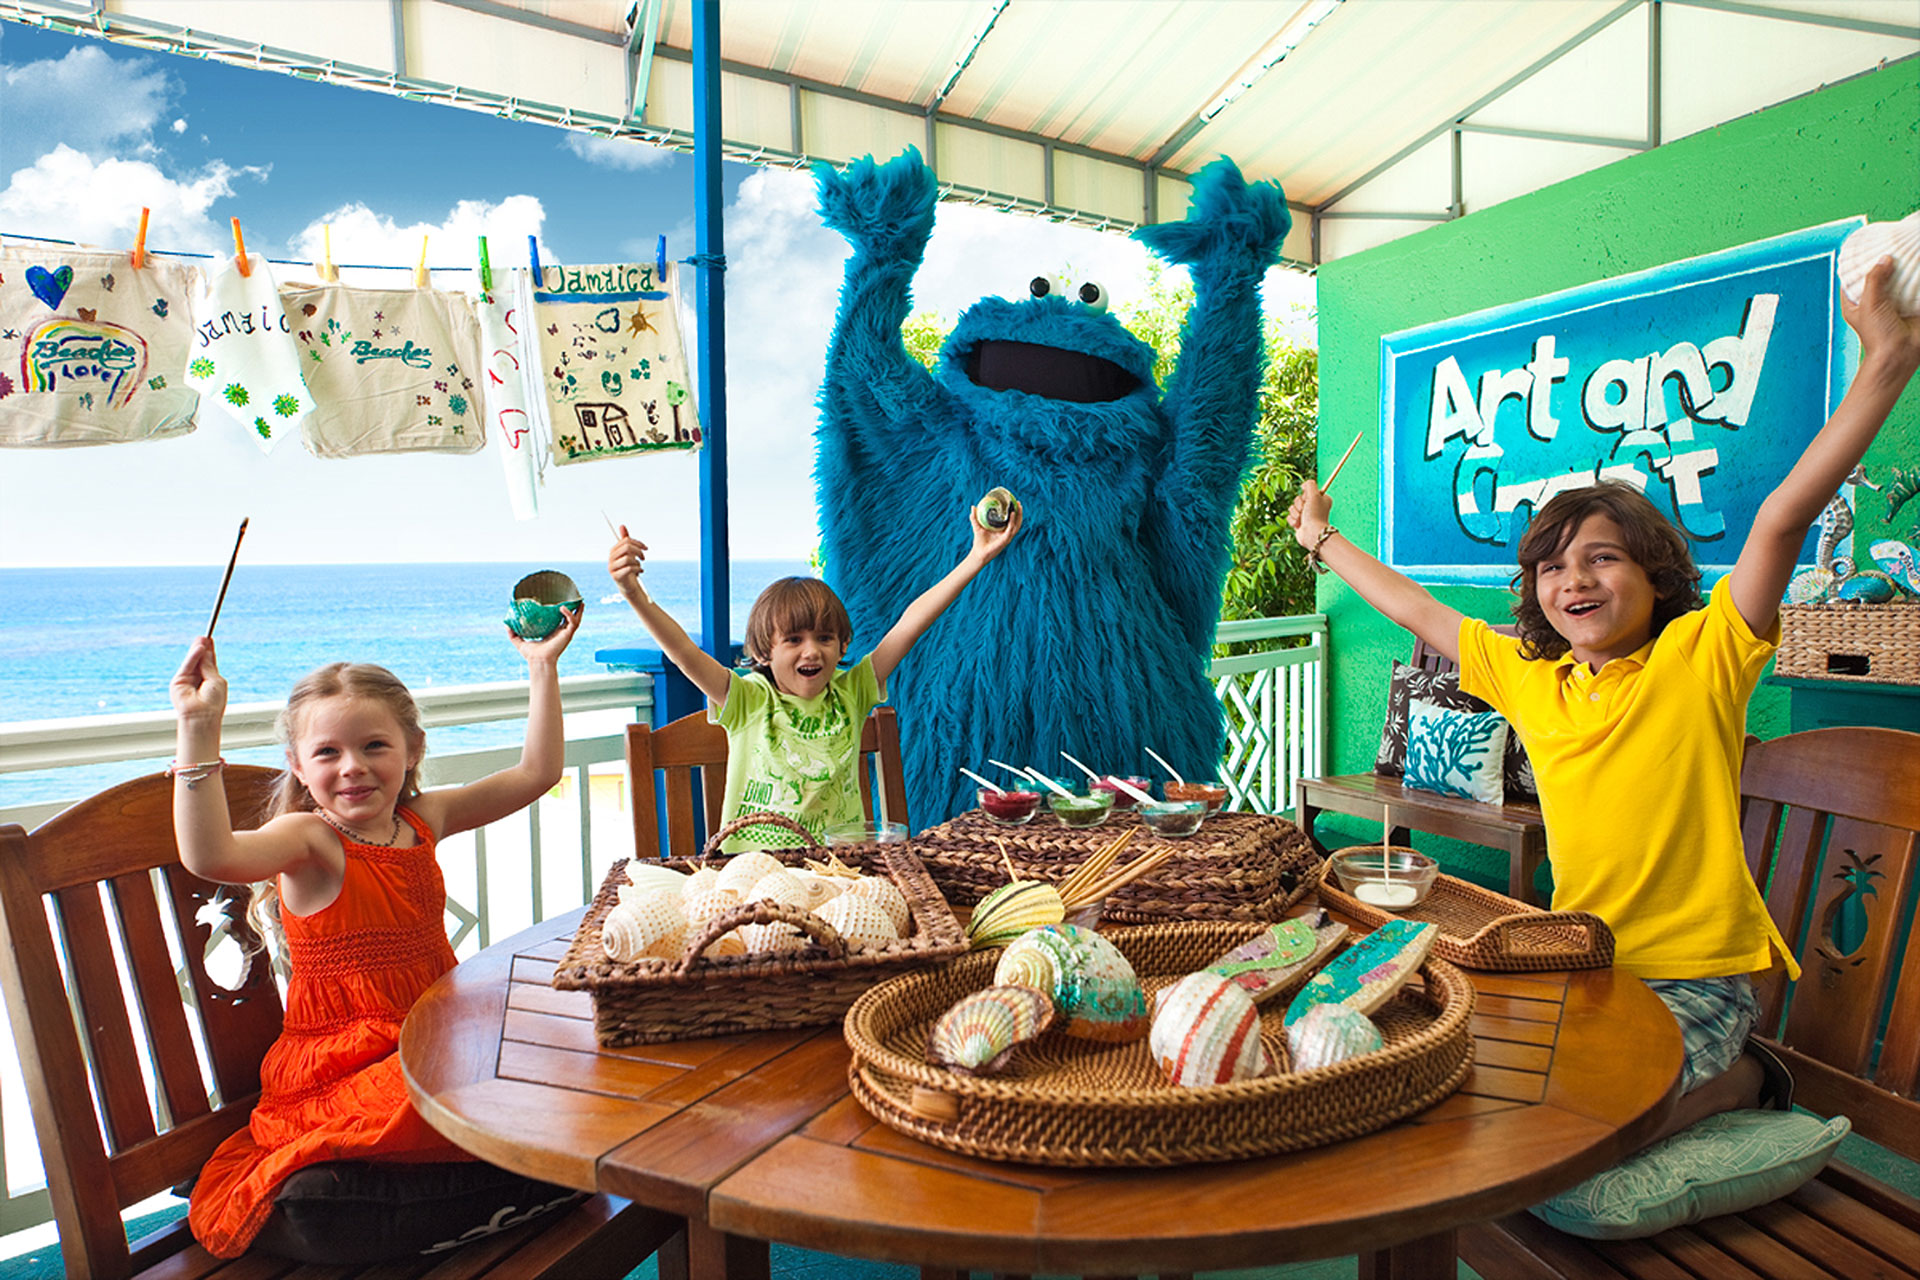 Beaches Sesame Street Program; Courtesy of Beaches Resorts